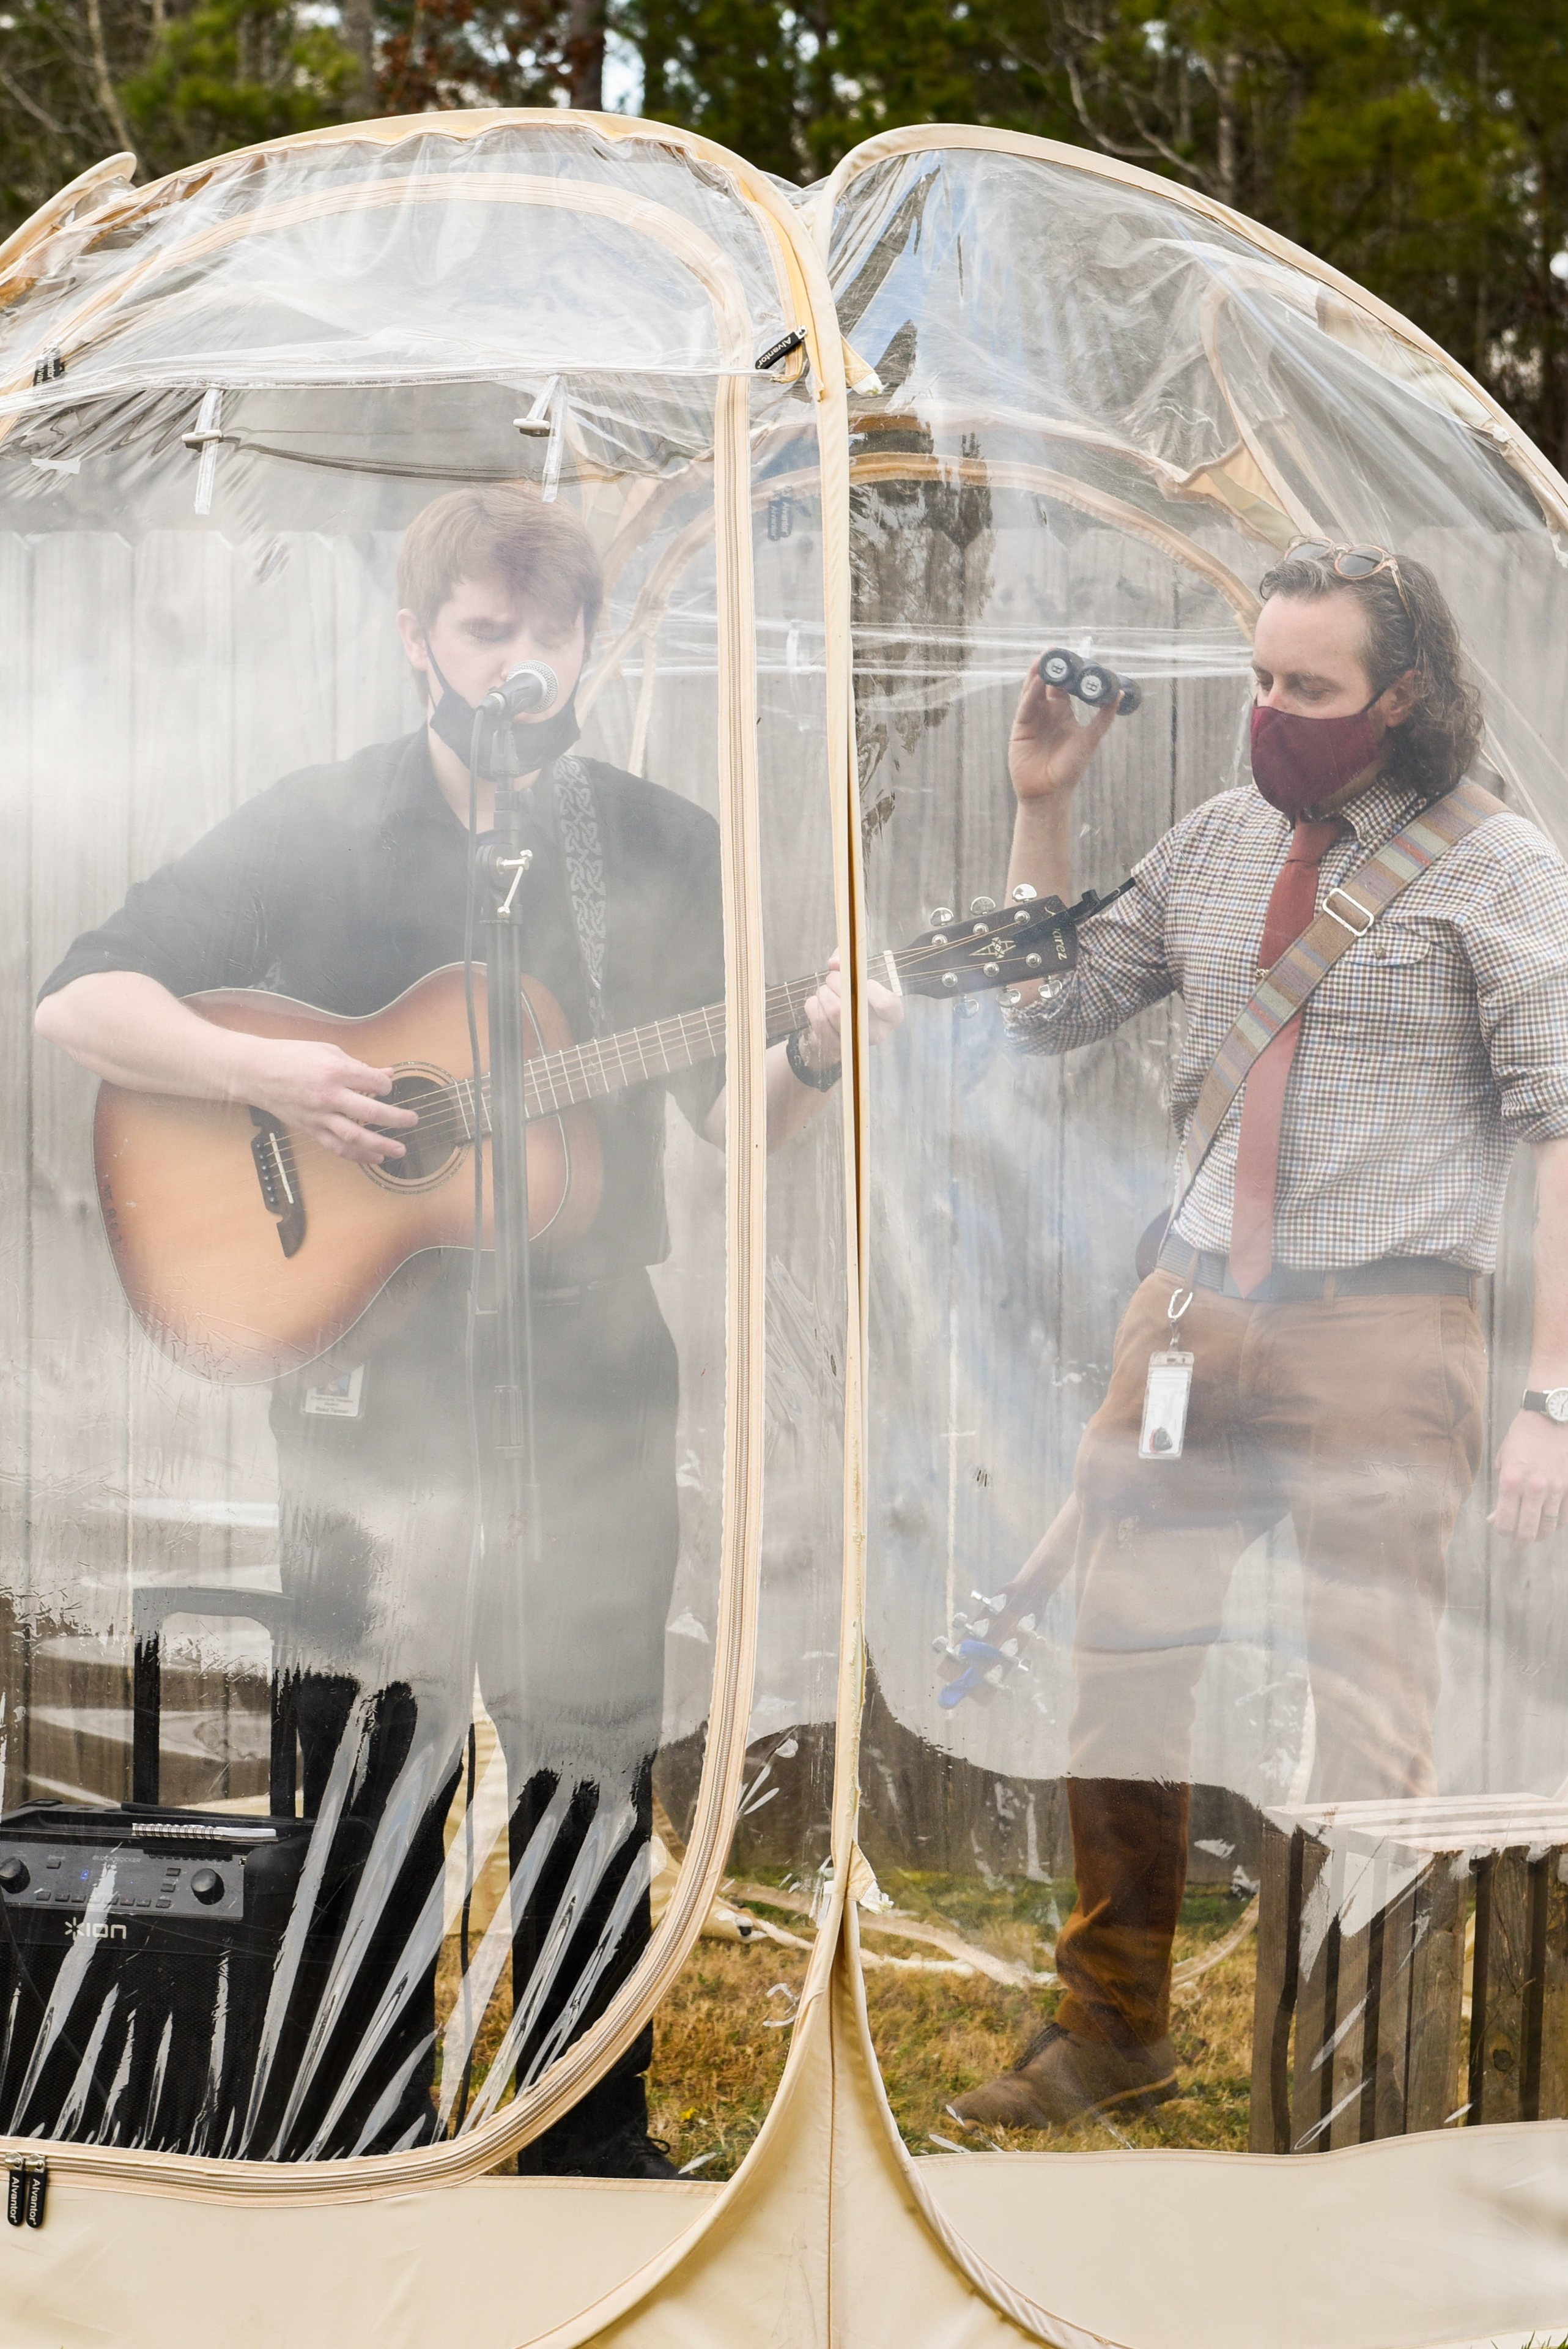 Senior Reed Tanner sings to elderly residents from inside a protective bubble, while graduate student Matthew Seymour backs him up with shaker sound.